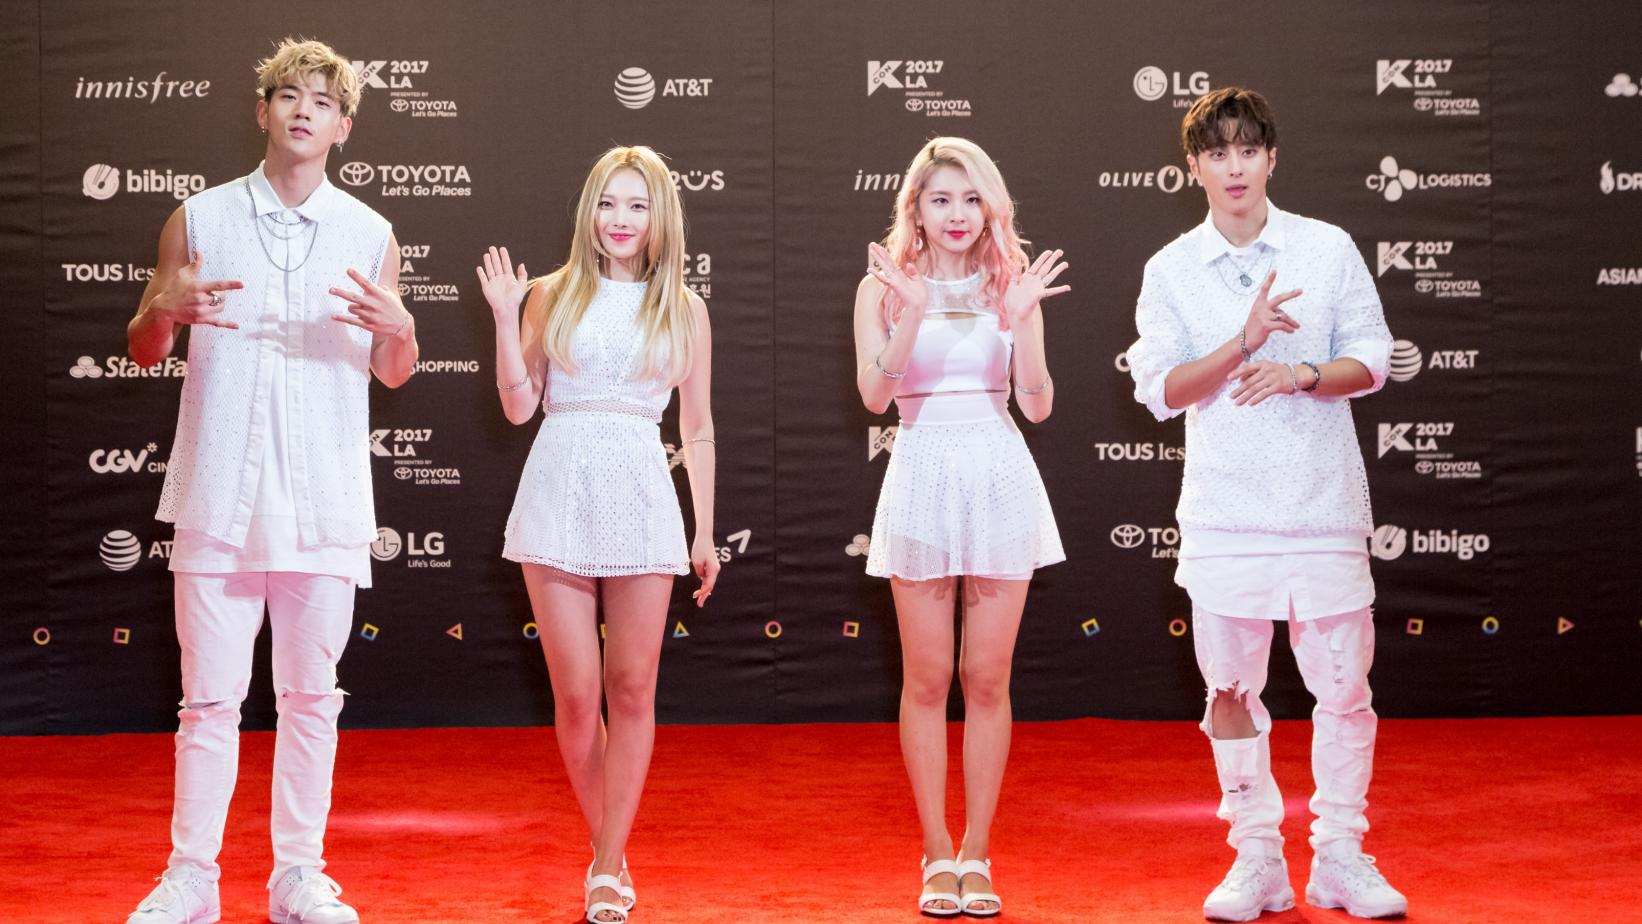 Kard photographed in 2017